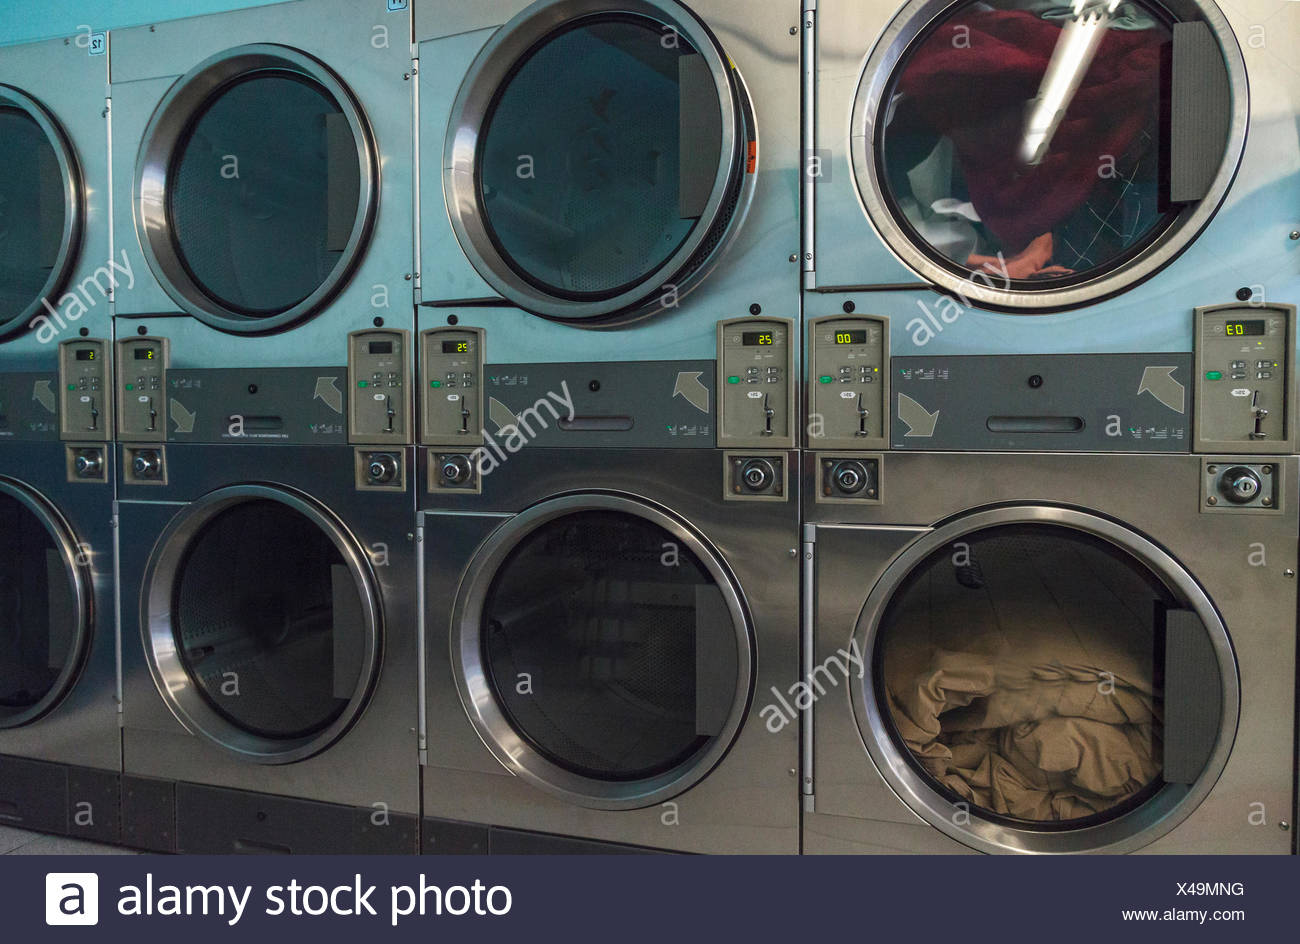 Washing clothes and drying at the Laundromat - Stock Image